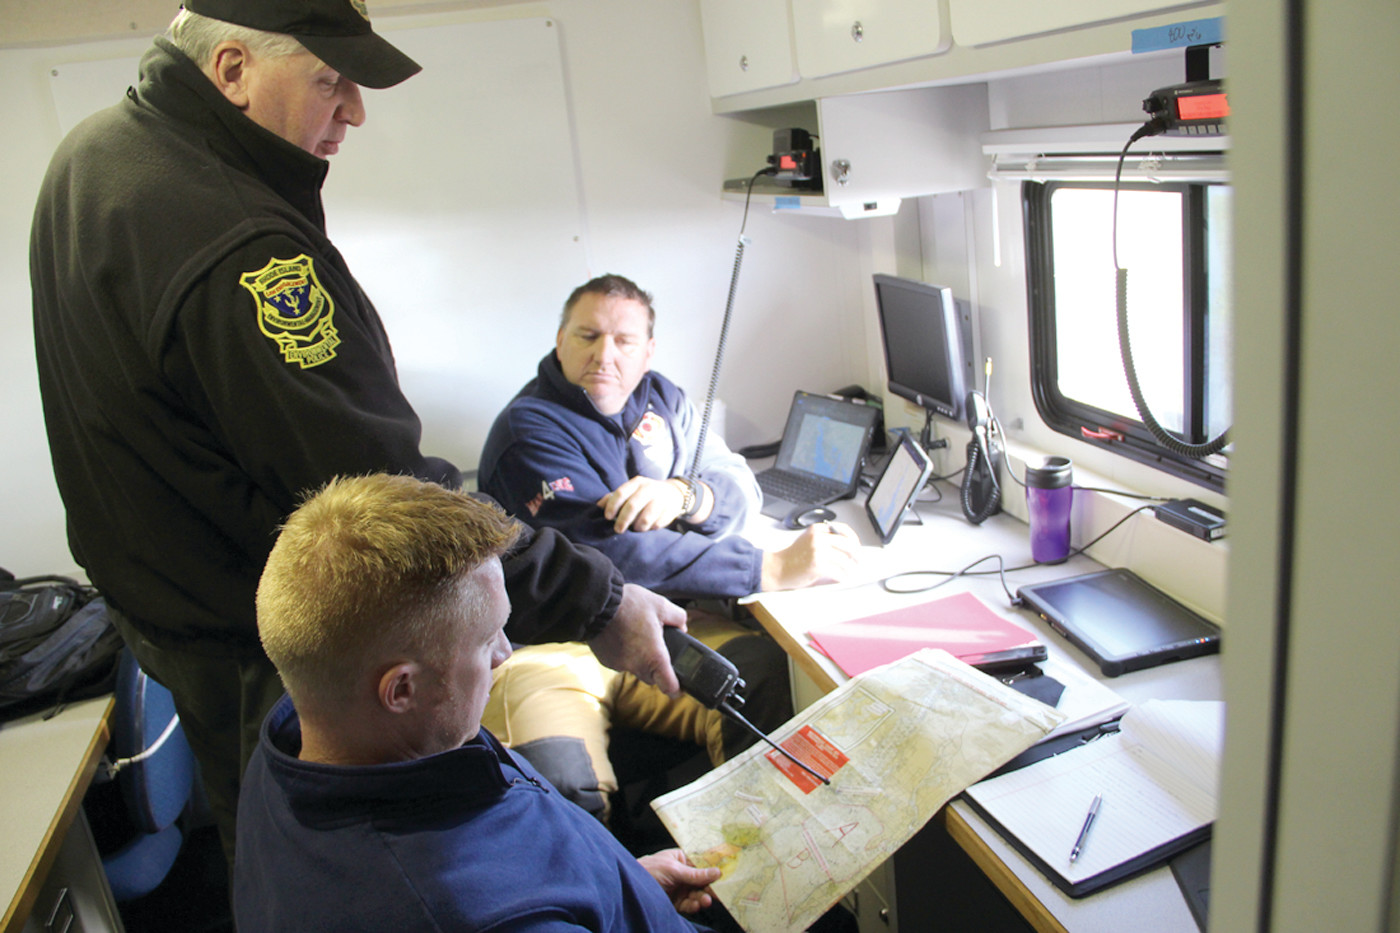 COORDINATING SEARCH: Kurt Blanchard of the DEM talks with Warwick firefighters Lt. Dan Bradley and Justin Vail, who managed a grid-by-grid search of bay waters conducted by as many as eight vessels.